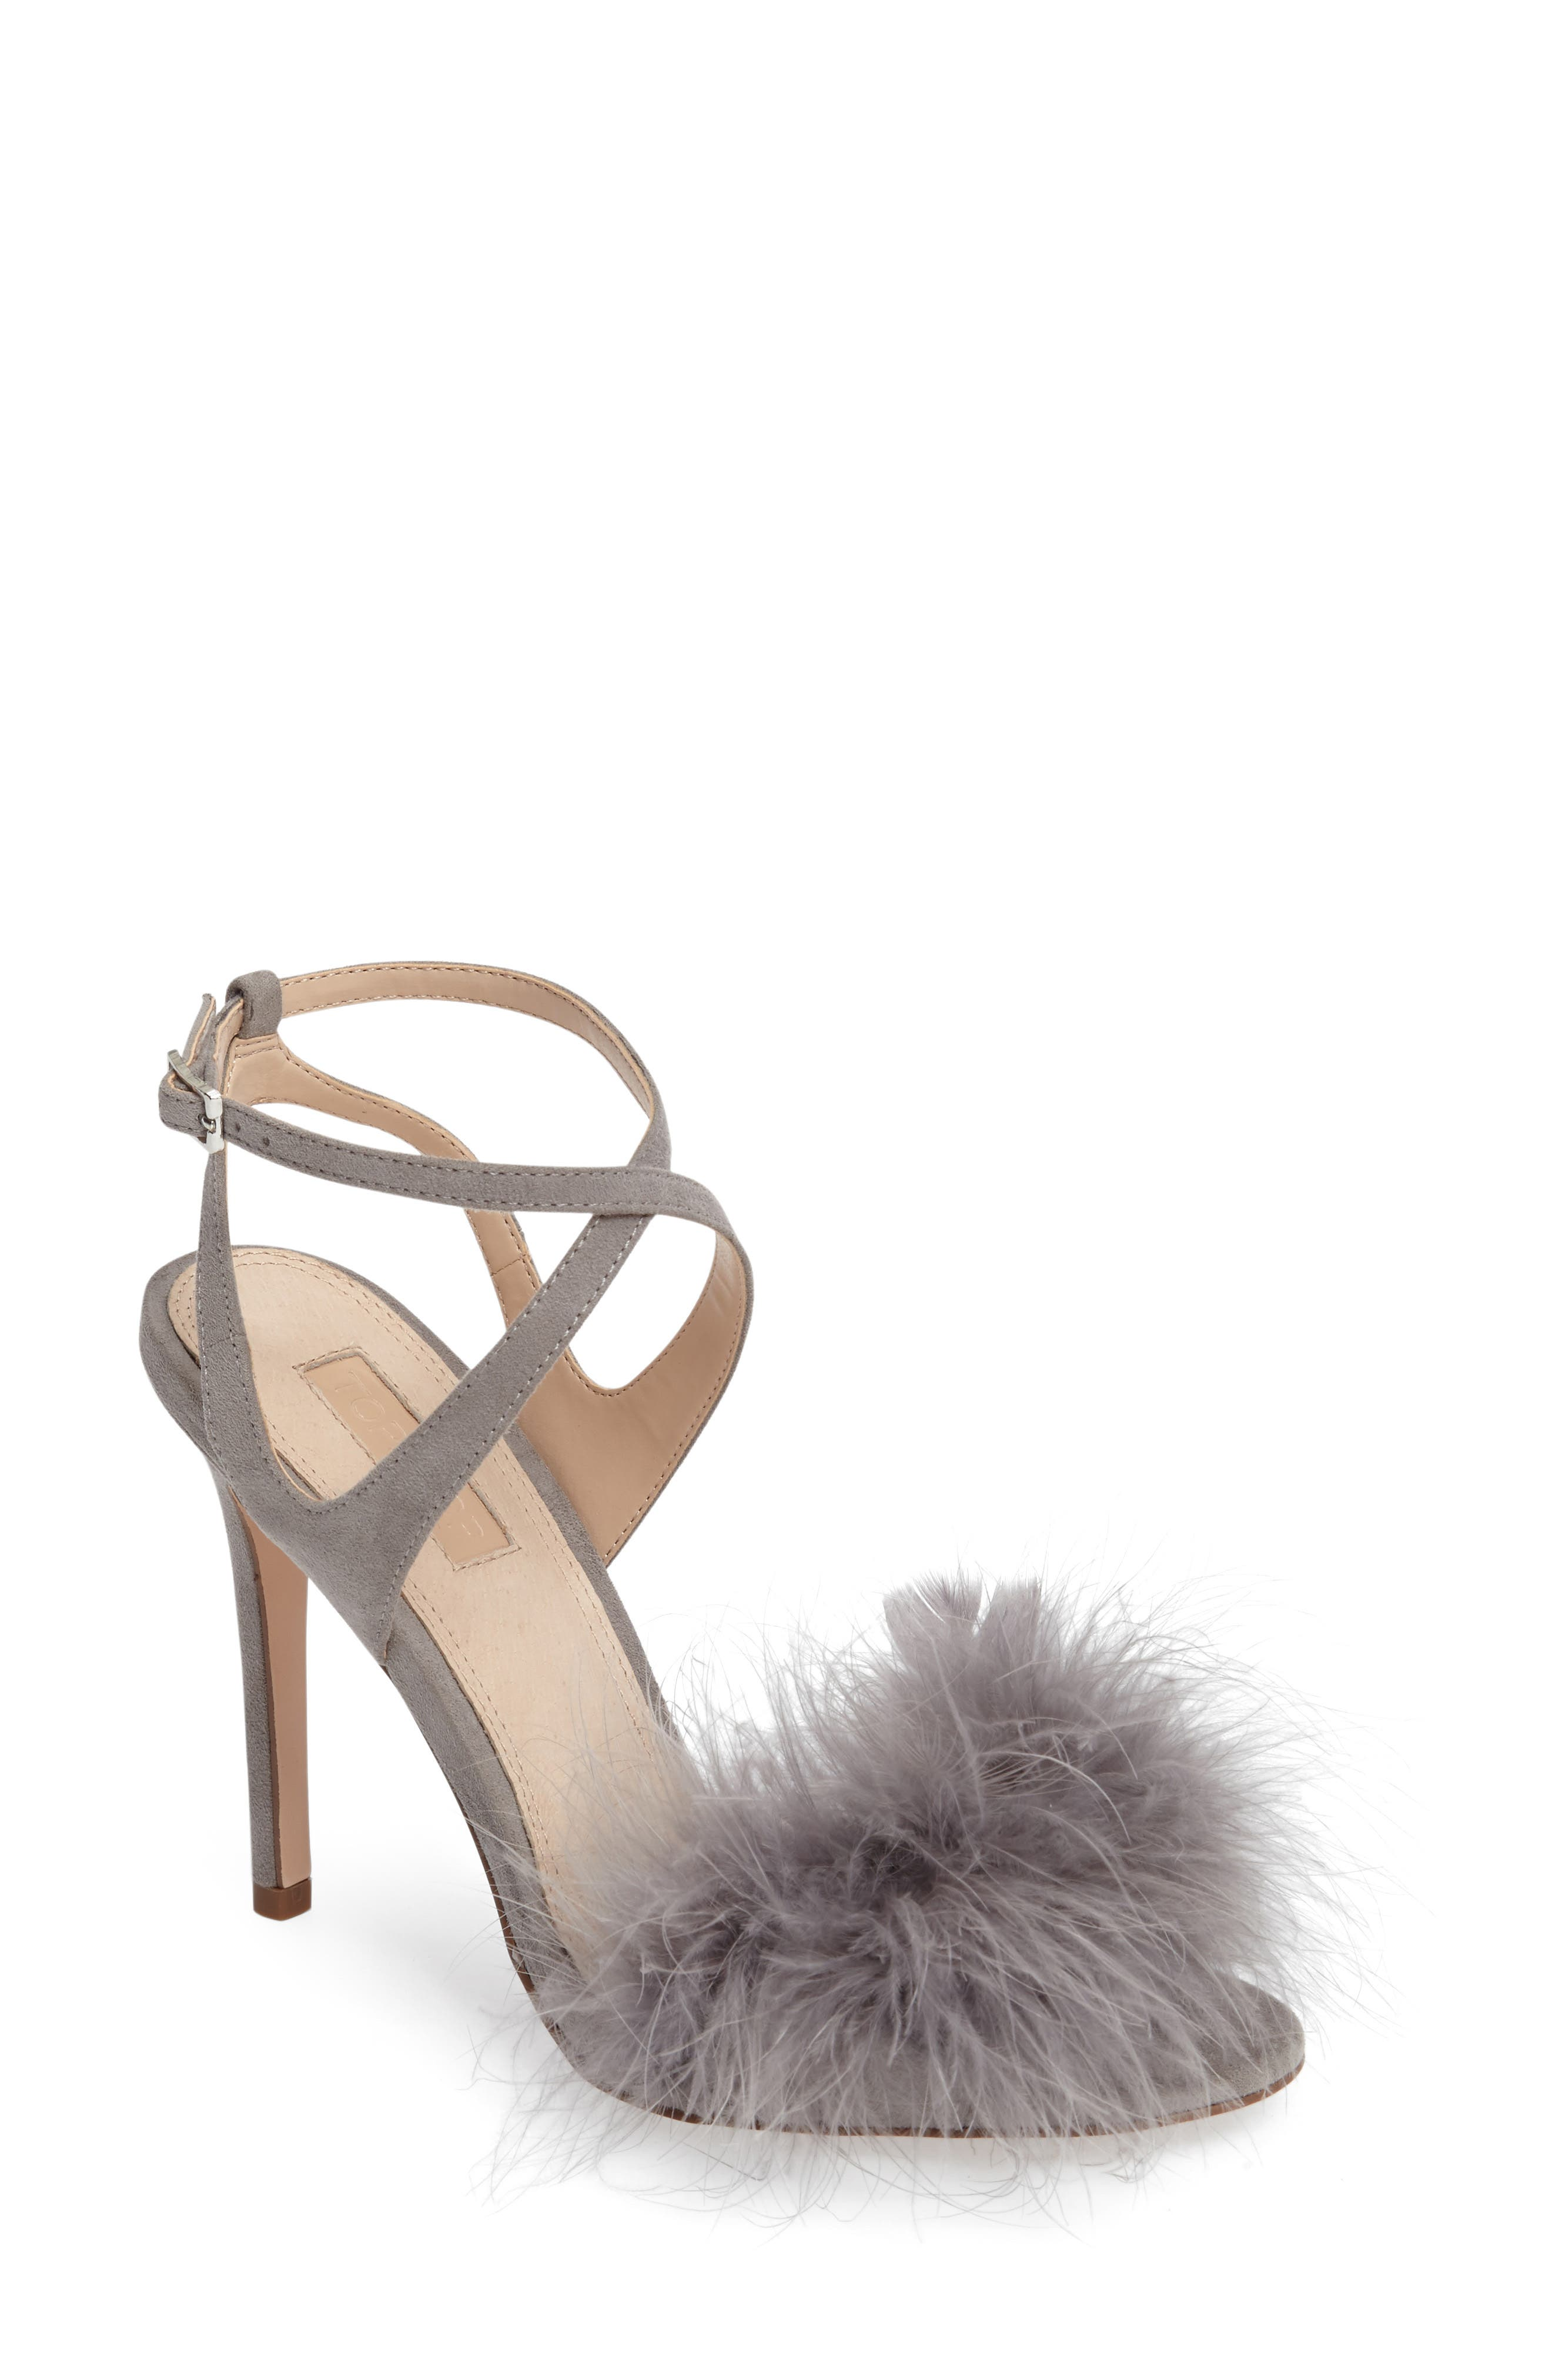 Reine Feathered Sandal,                             Main thumbnail 1, color,                             020